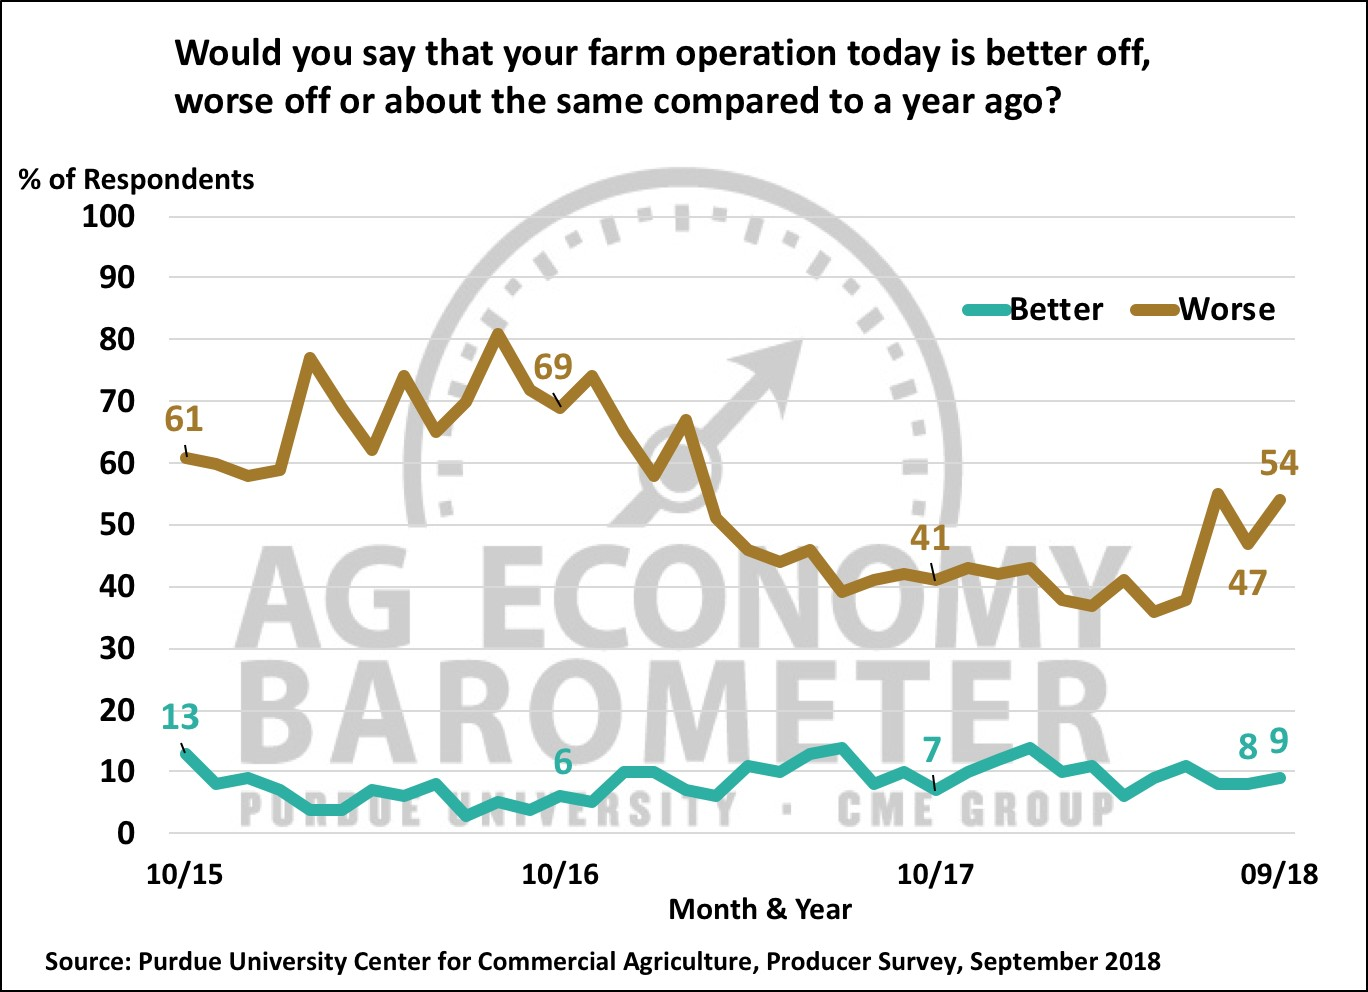 Figure 3. Would you say that your farm operation today is better off, worse off, or about the same compared to a year ago?, October 2015-September 2018.